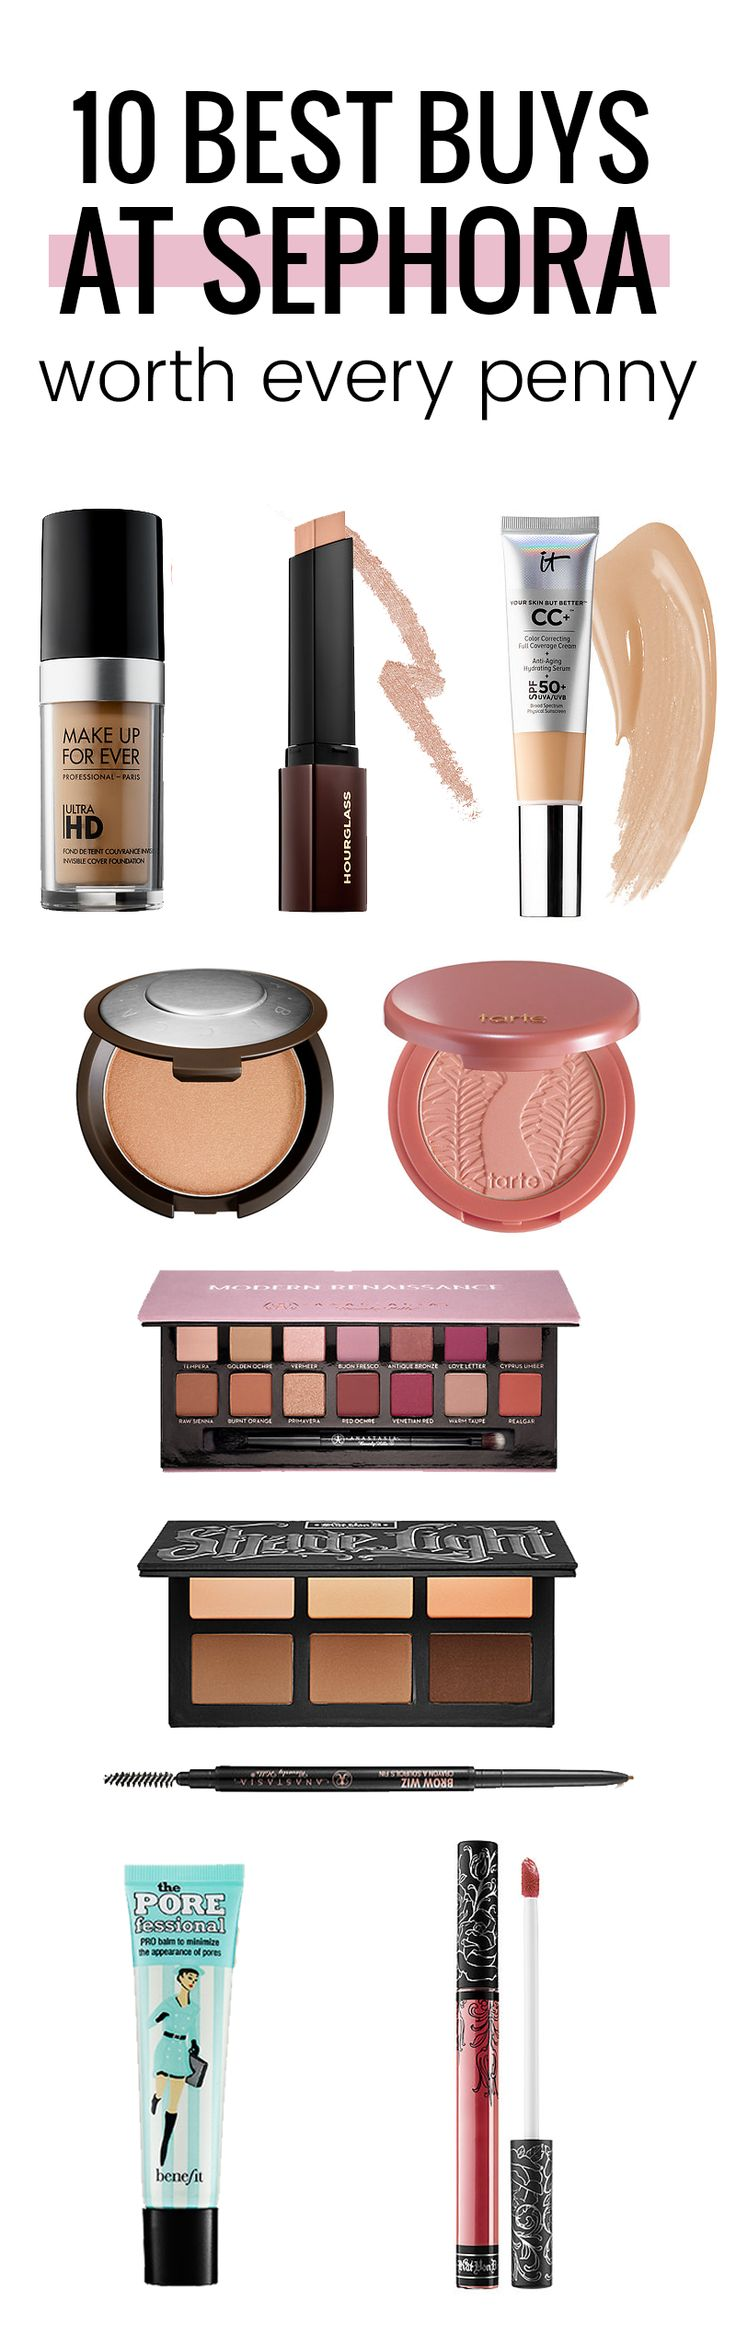 the 10 best buys at Sephora worth every penny!